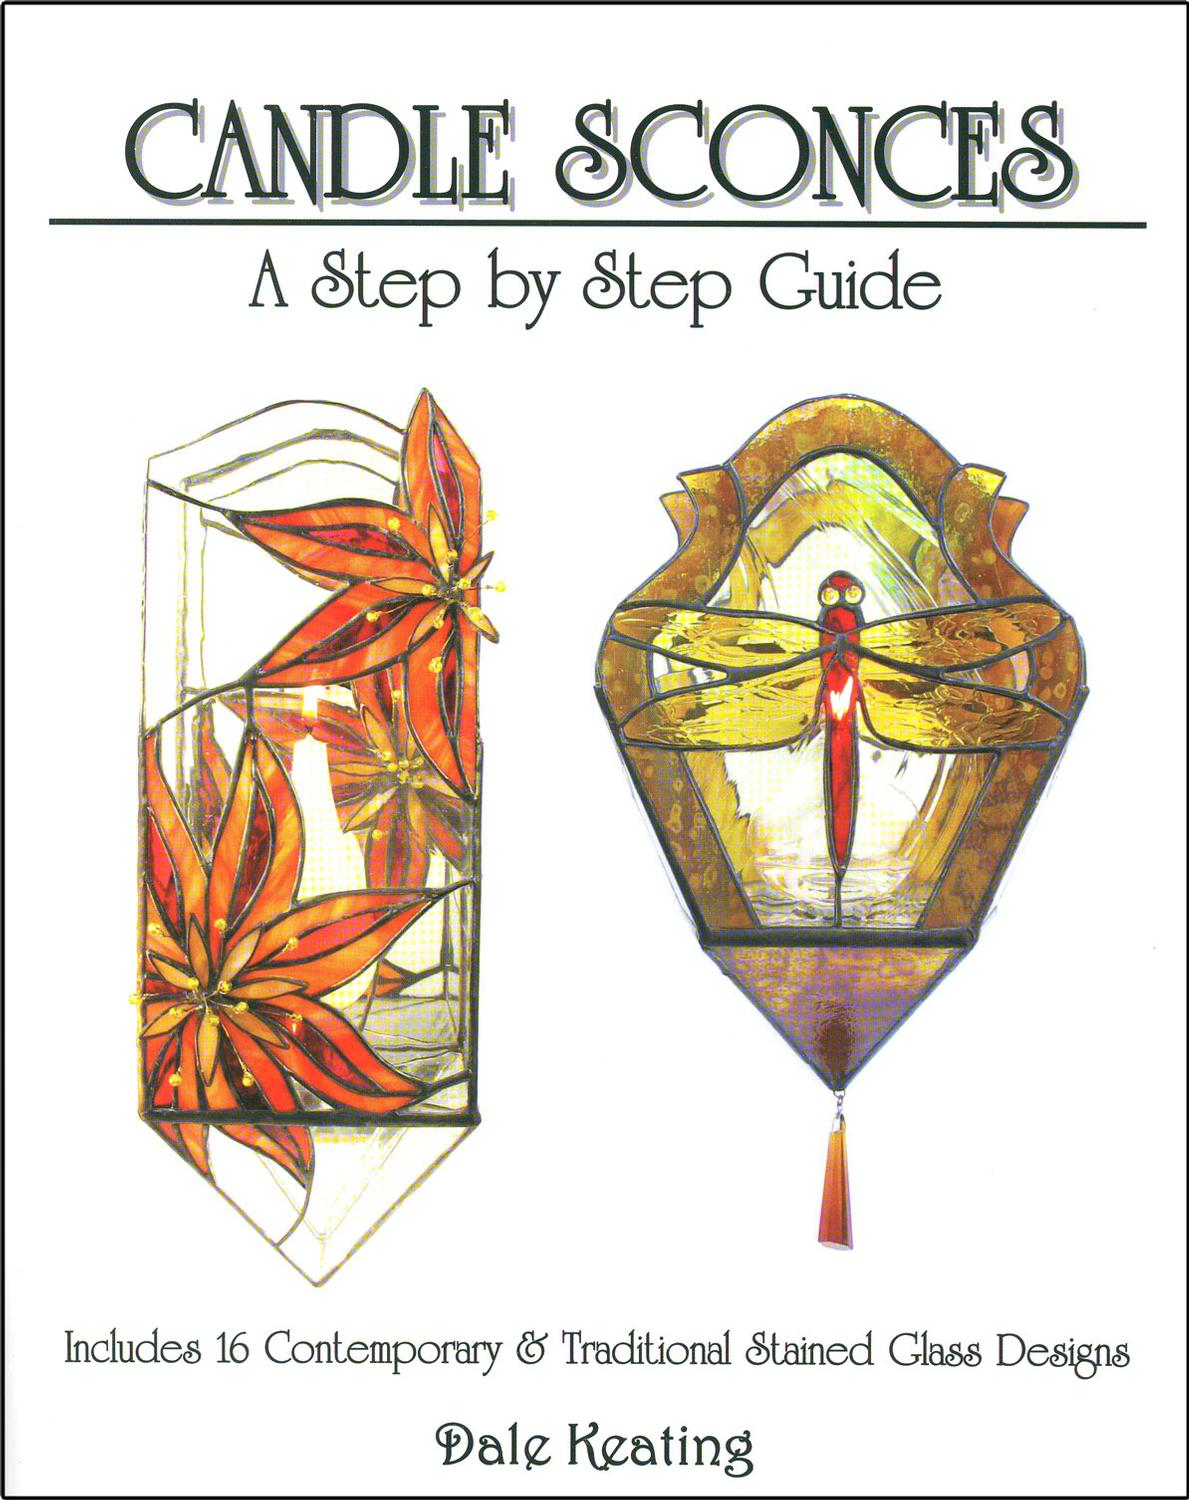 Candle Sconces: A Step by Step Guide